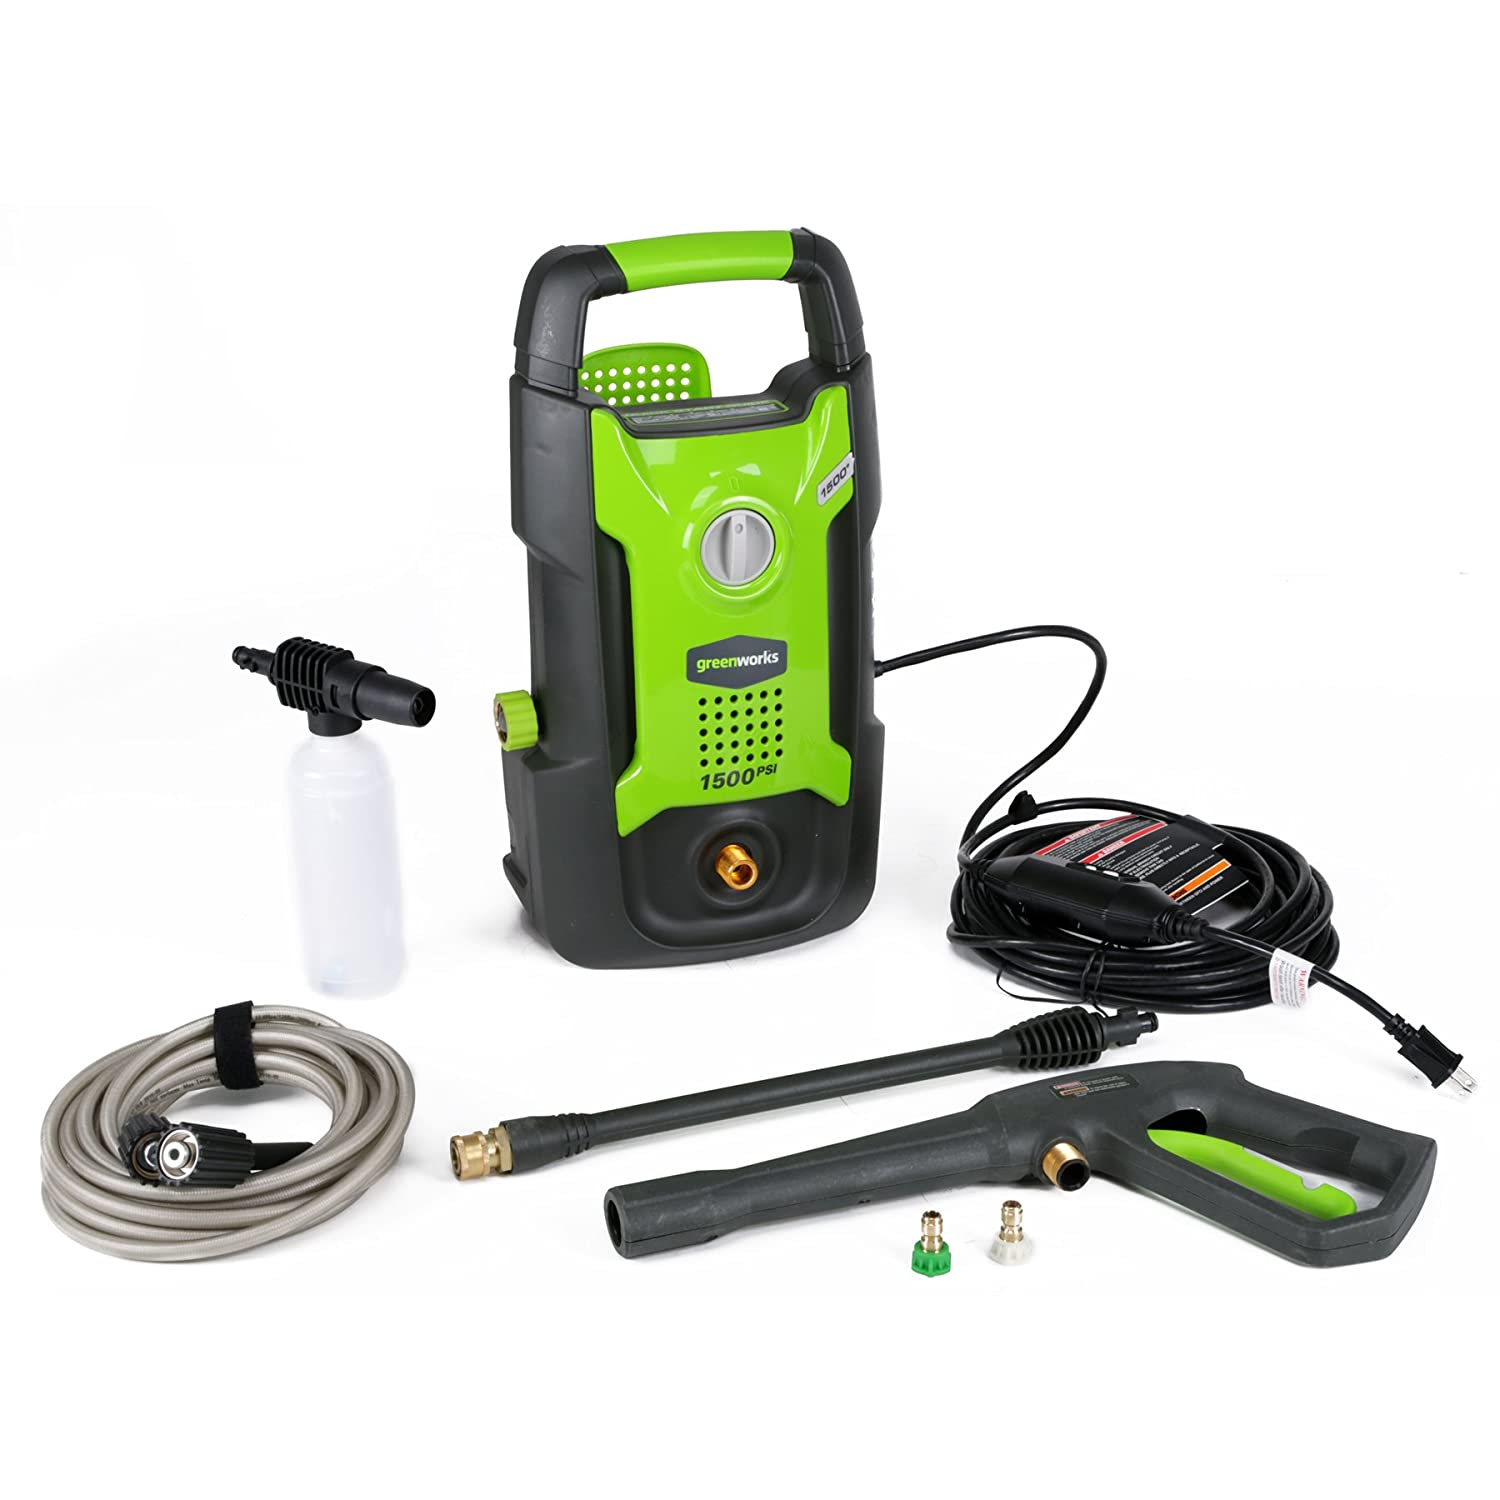 Greenworks 1500 PSI 13 Amp